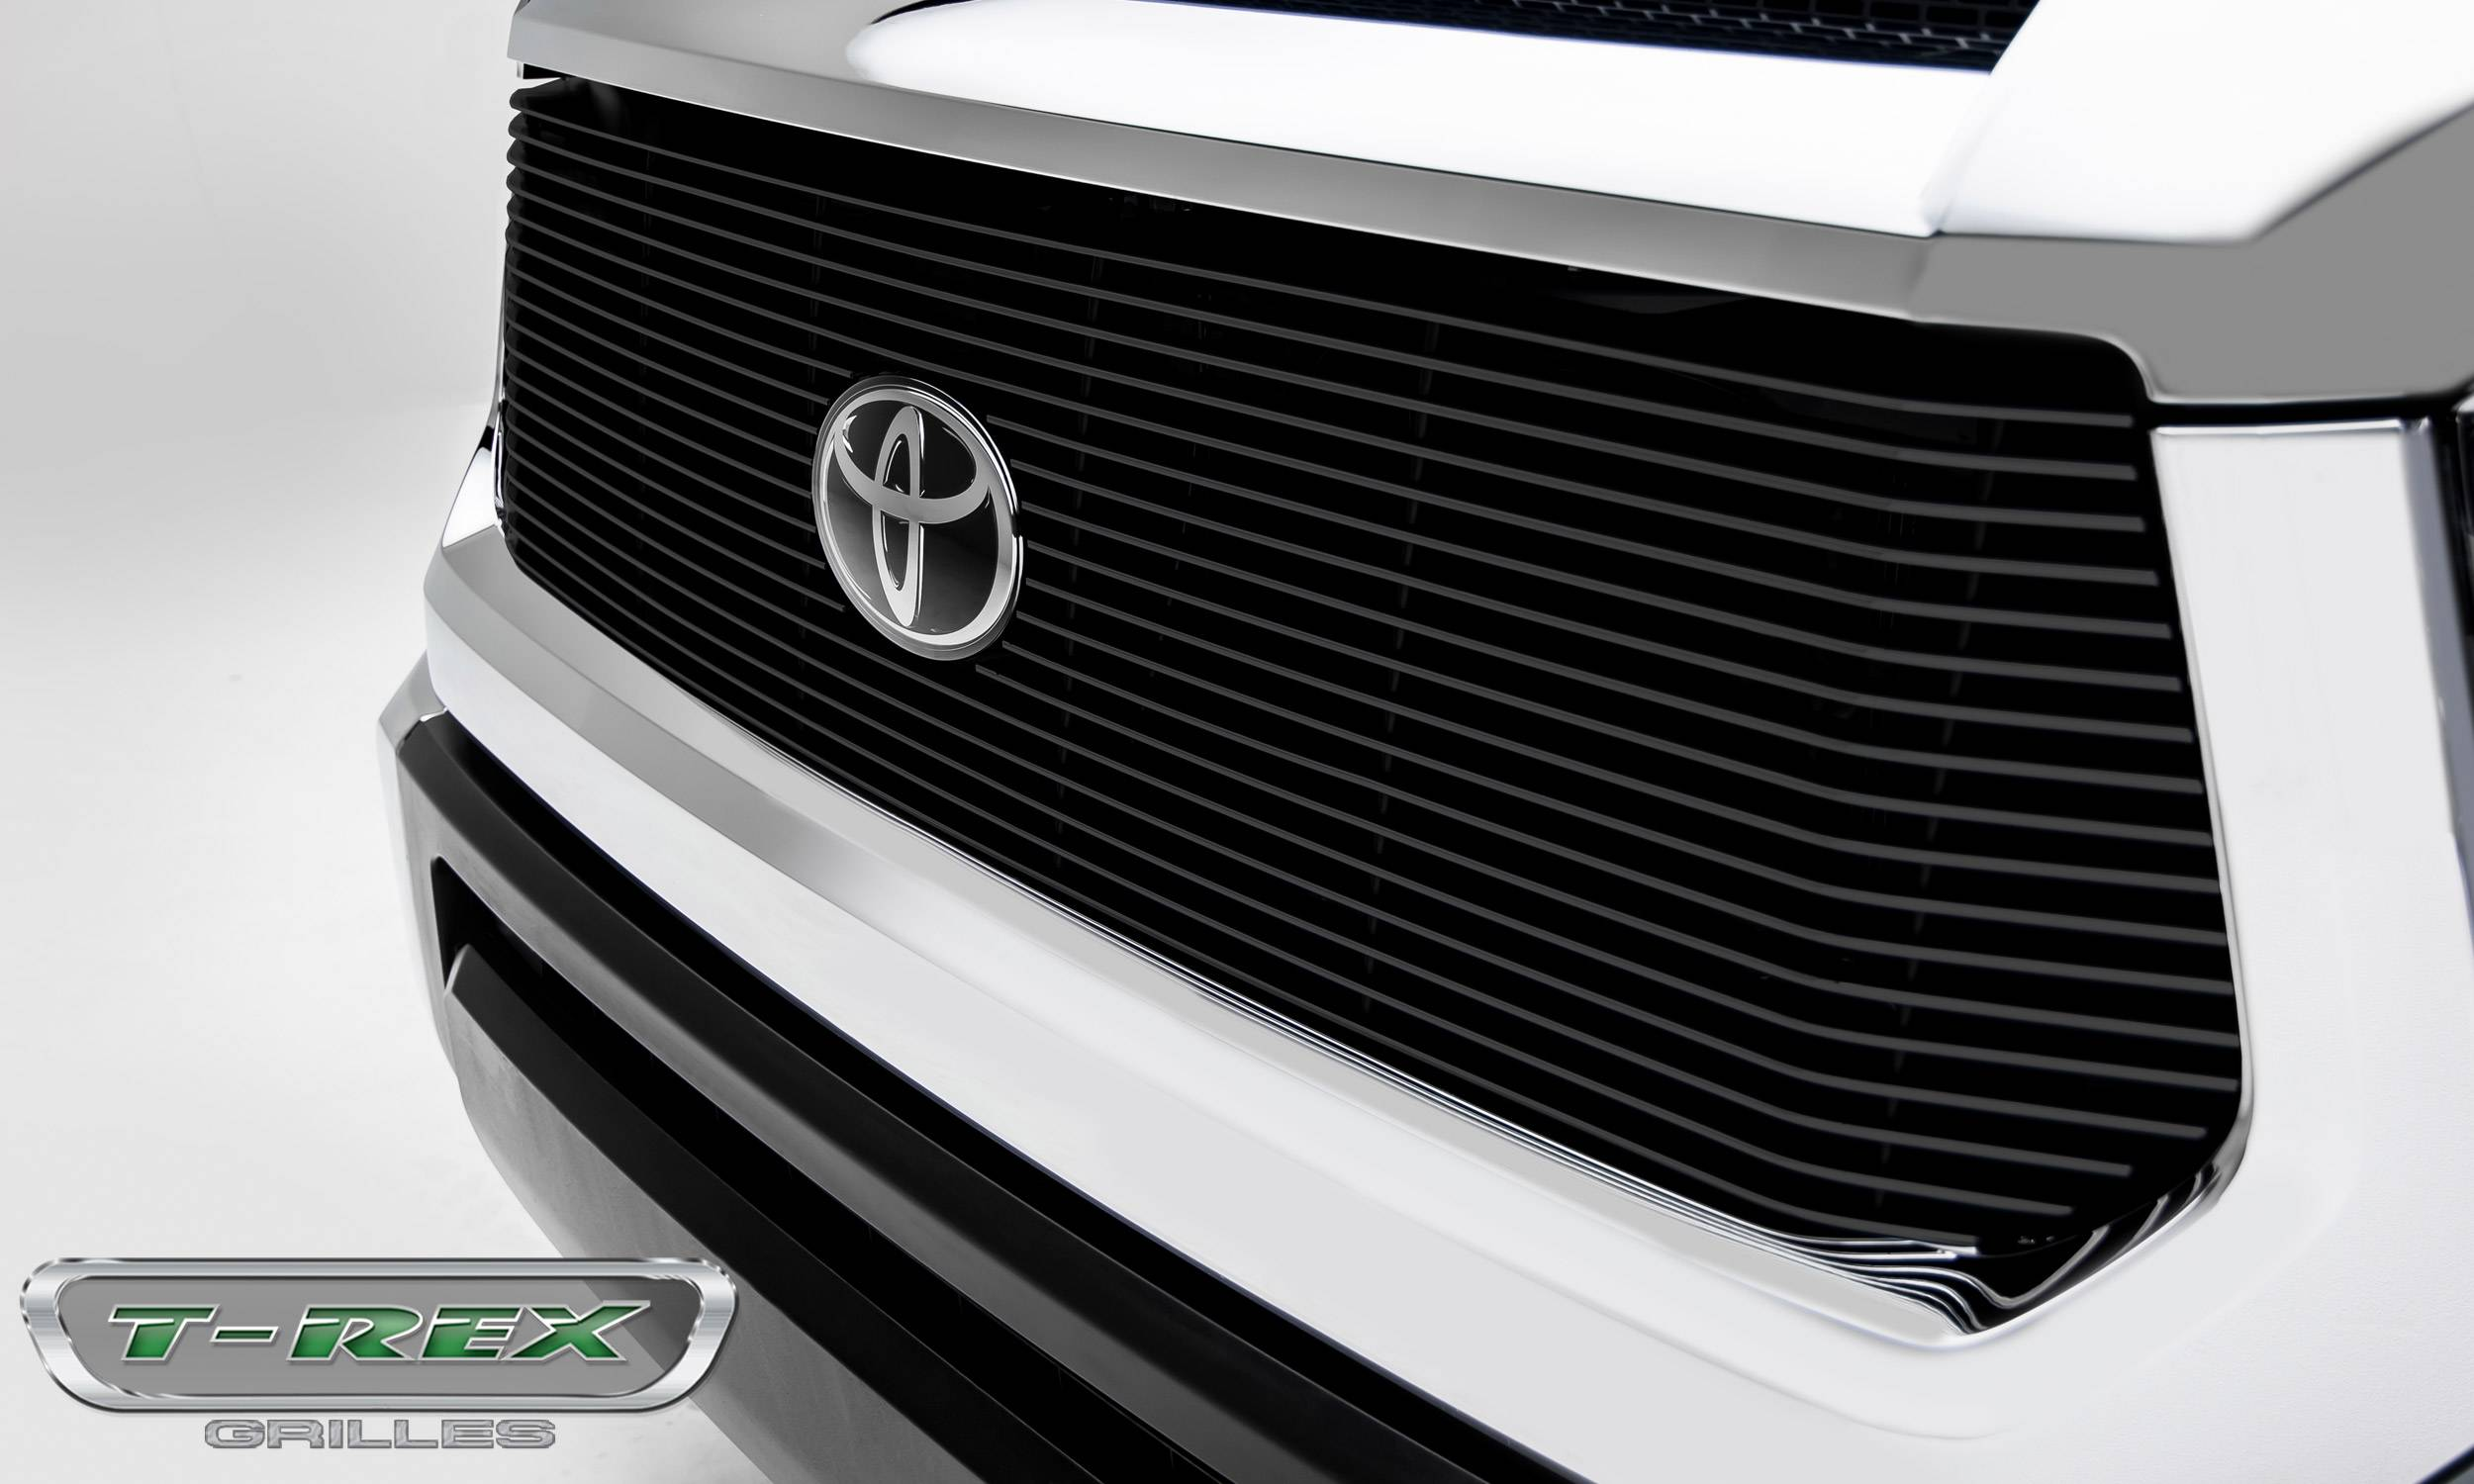 T-Rex Tundra Billet Grille, Main Replacement w/OE Logo Provision, 1 Pc, Black Powdercoated Aluminum Bars 2018+